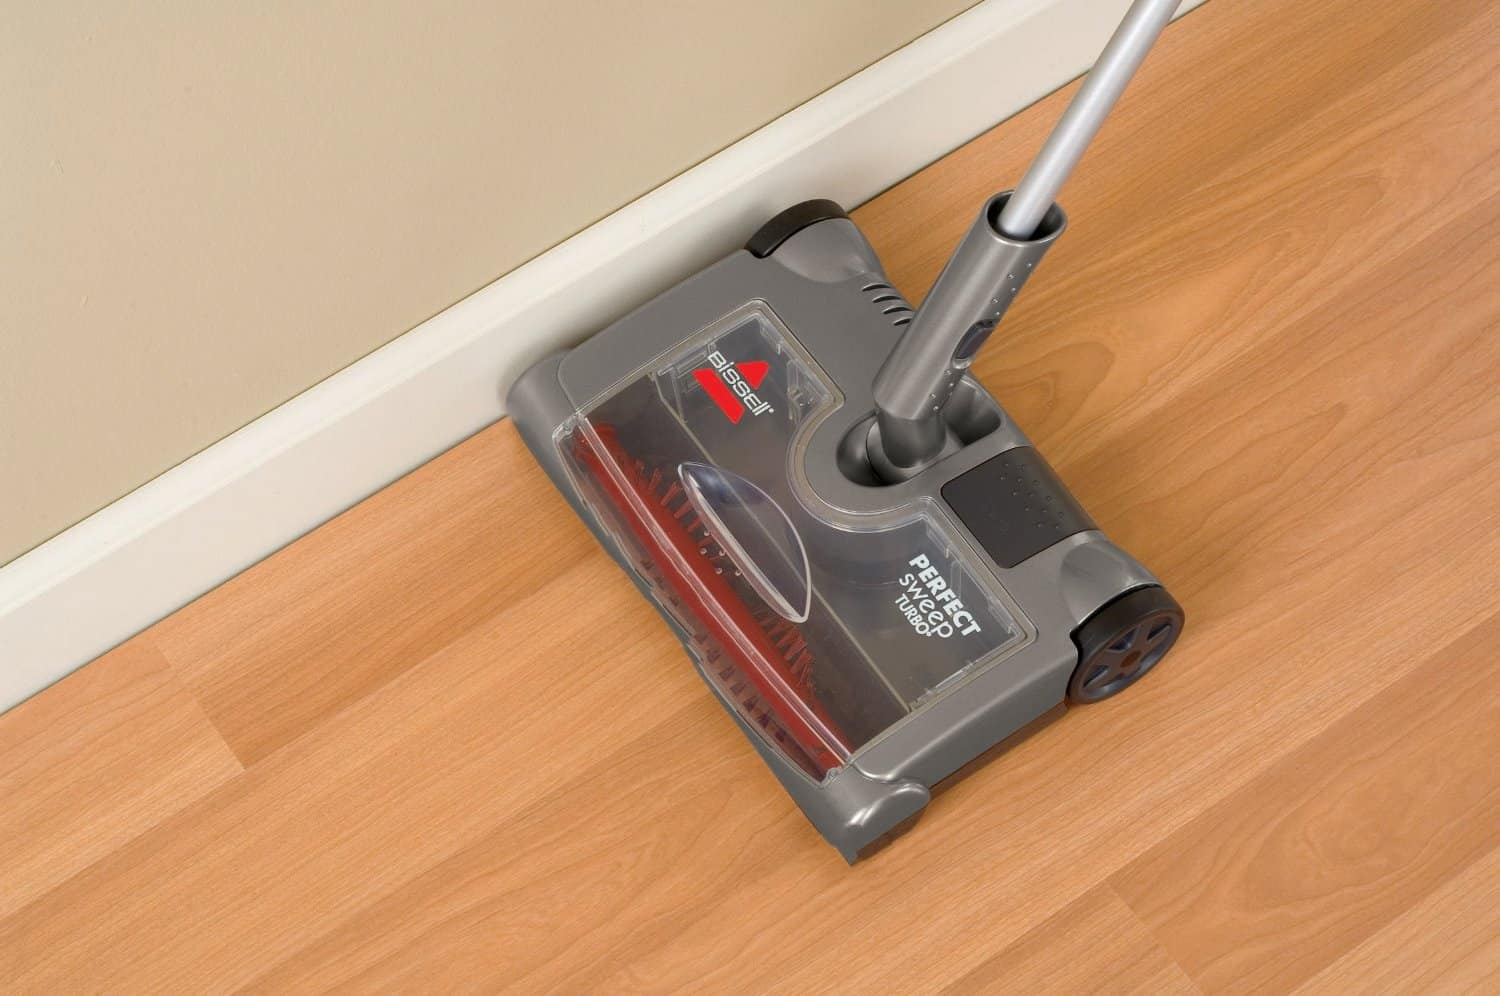 Sweep the kitchen floor - Edge Brush Picks Up Dirt Around Baseboards Too